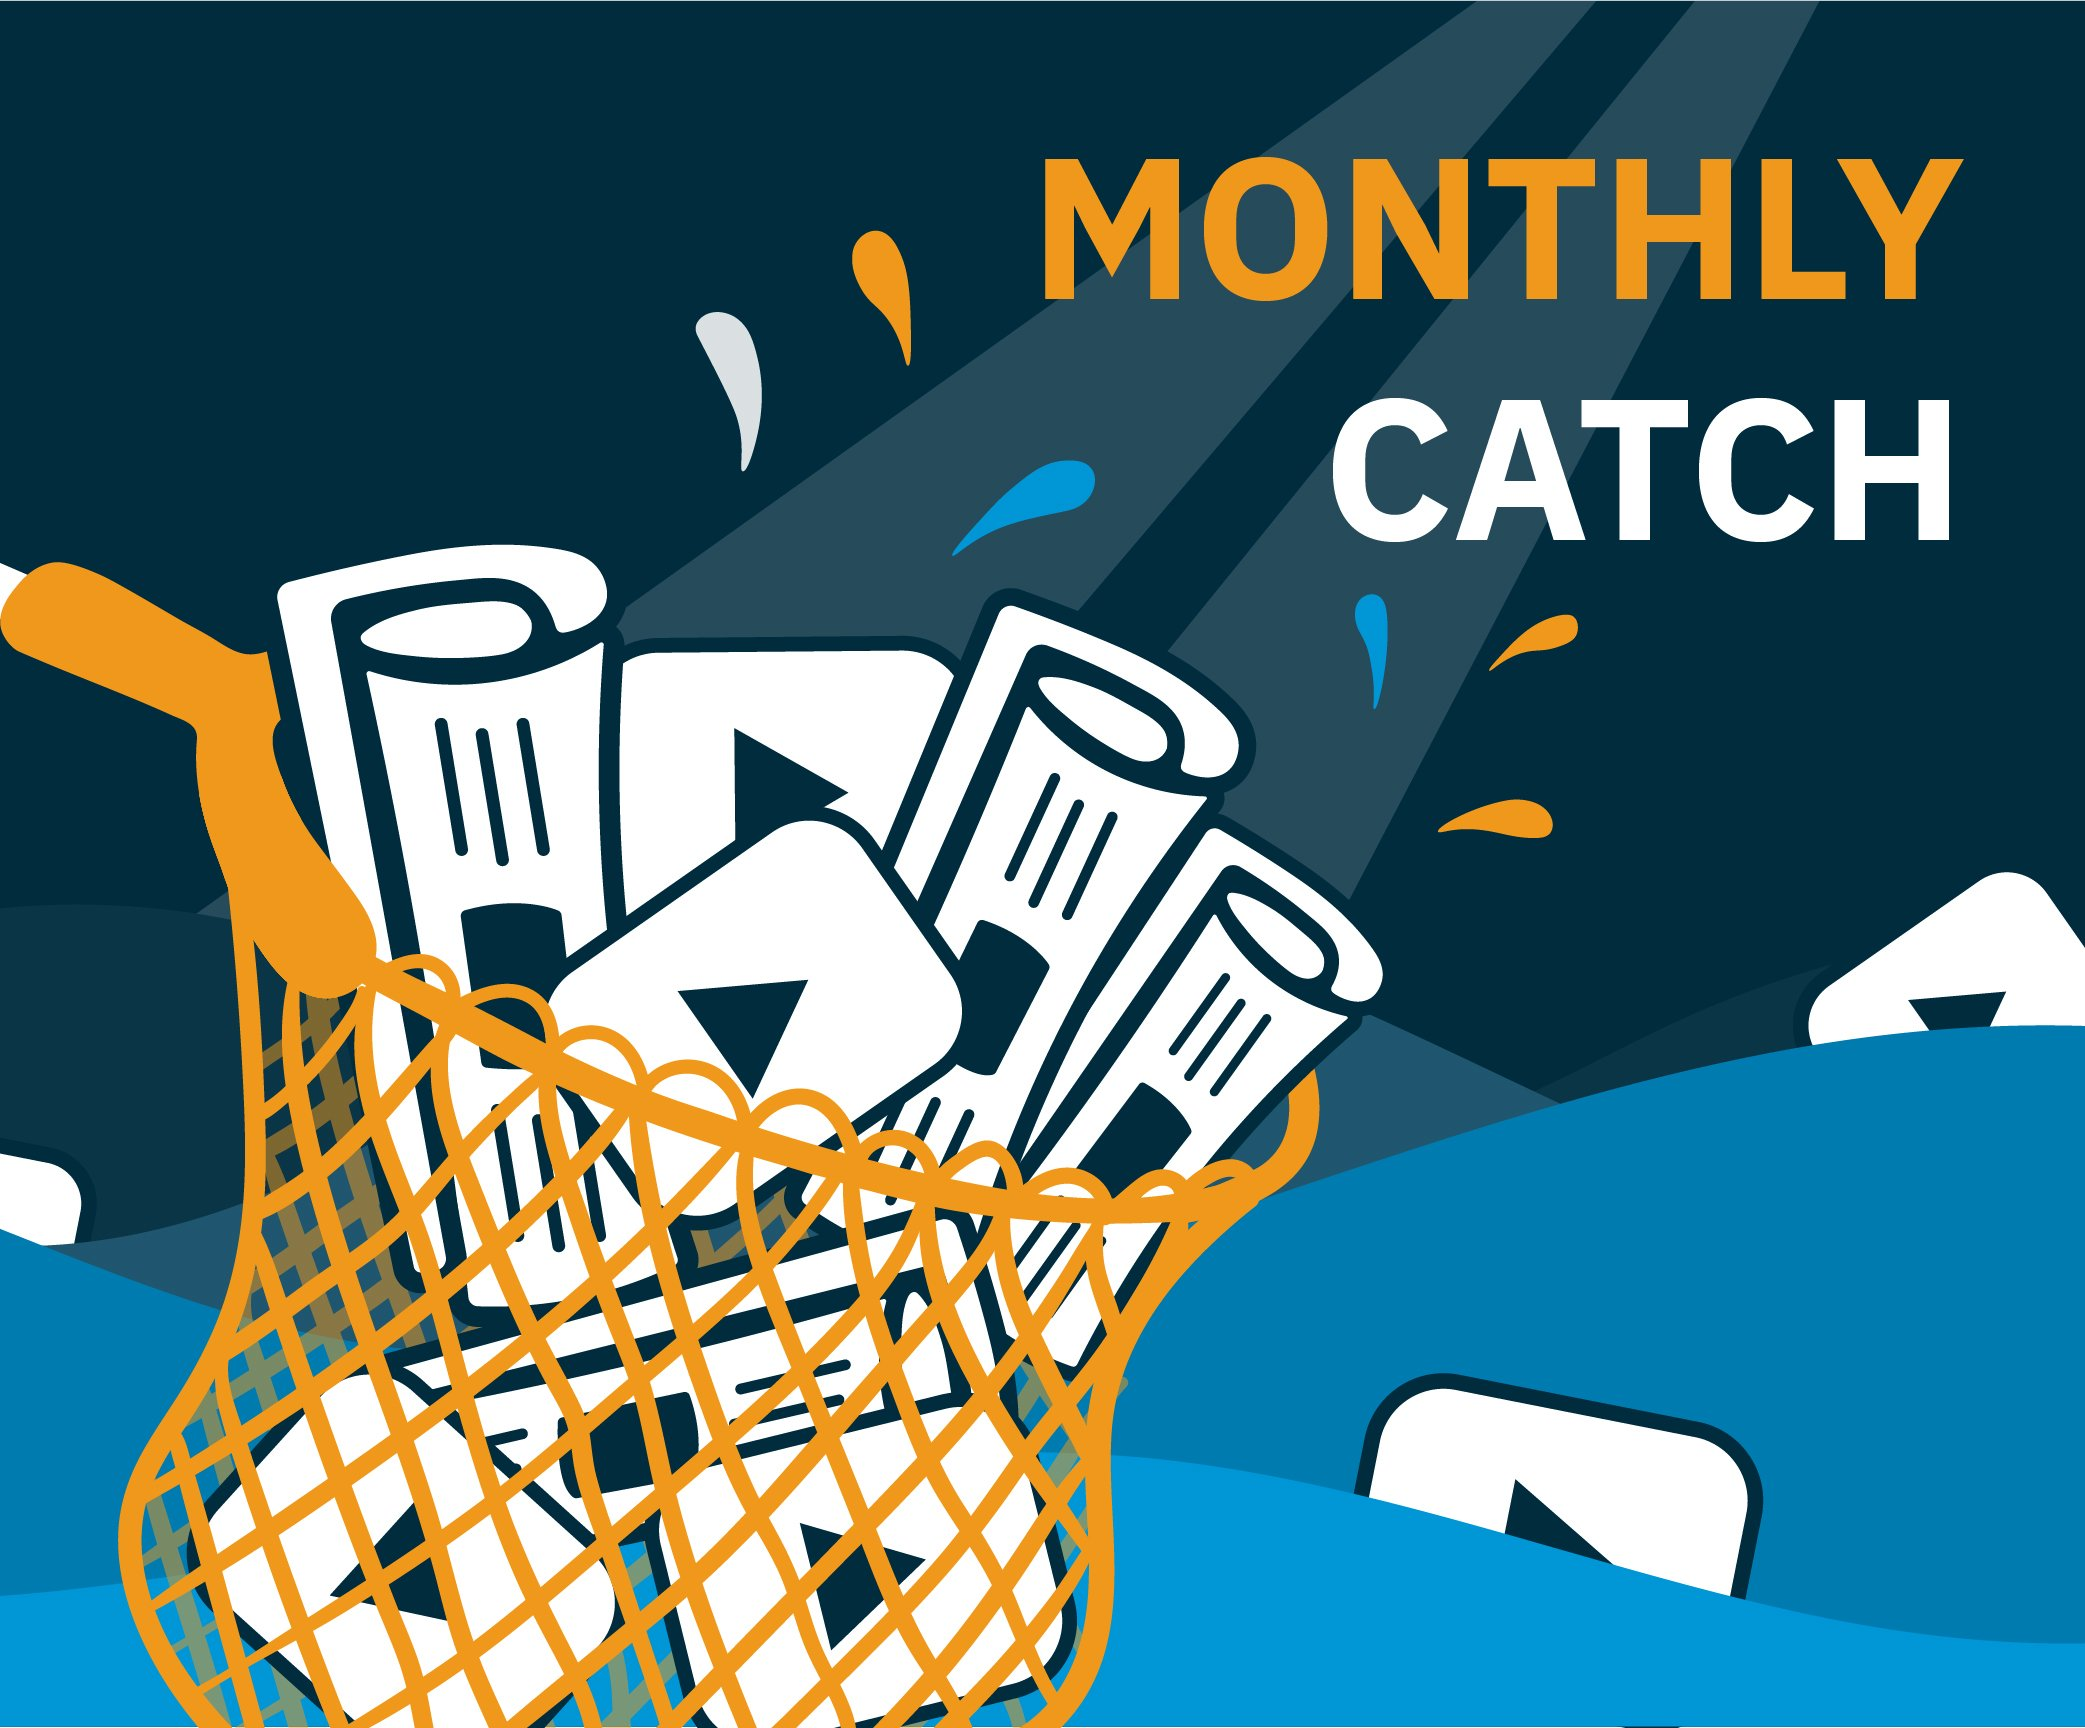 The Payara Monthly Catch from November 2020